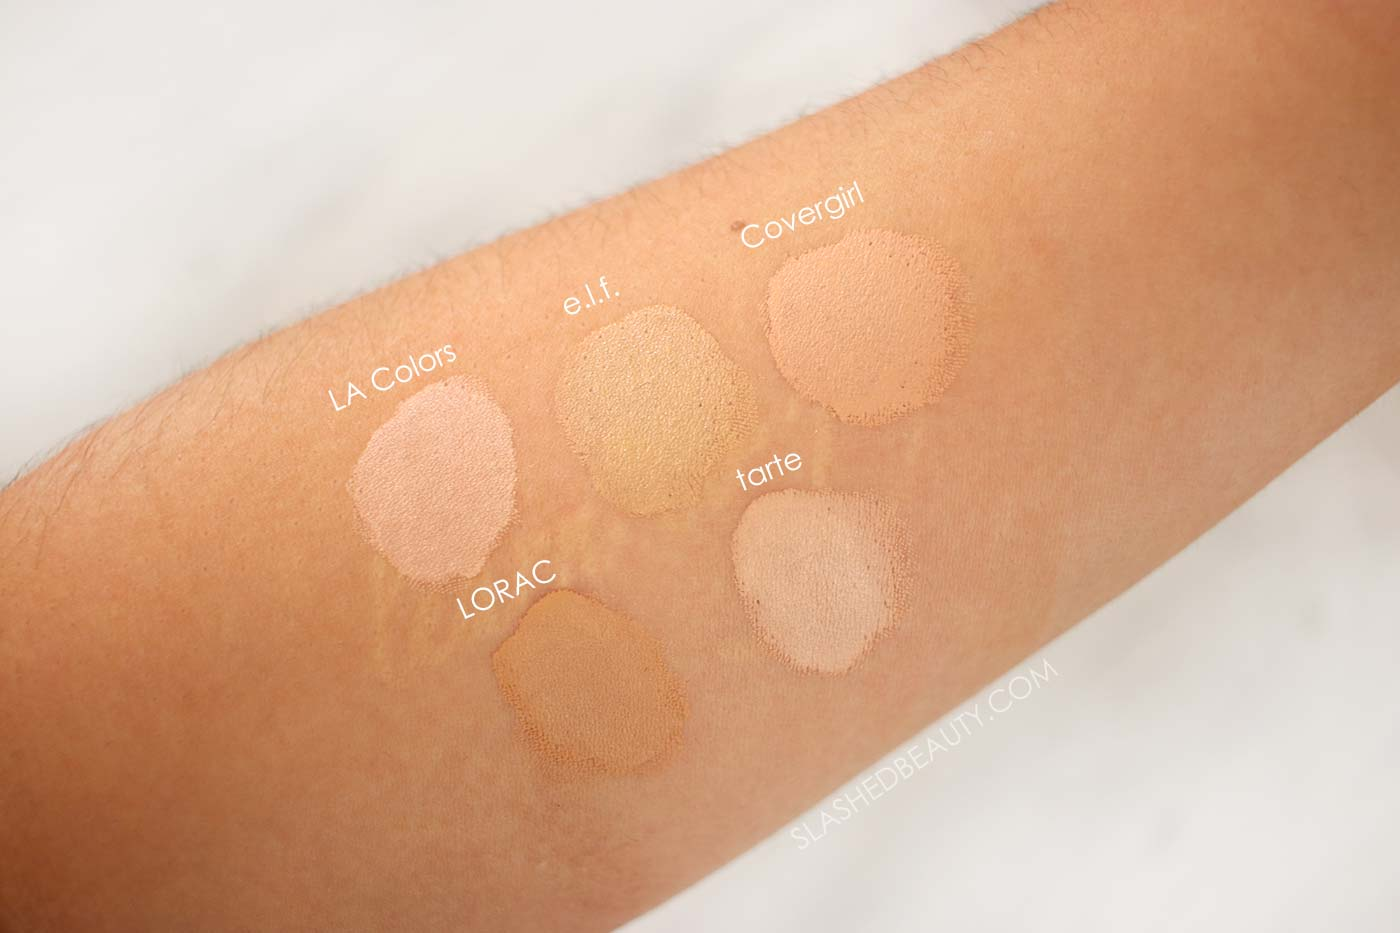 Light/Medium Concealer Swatches | The 5 Best Full Coverage Concealers for Every Budget | Best Drugstore Concealer | Slashed Beauty